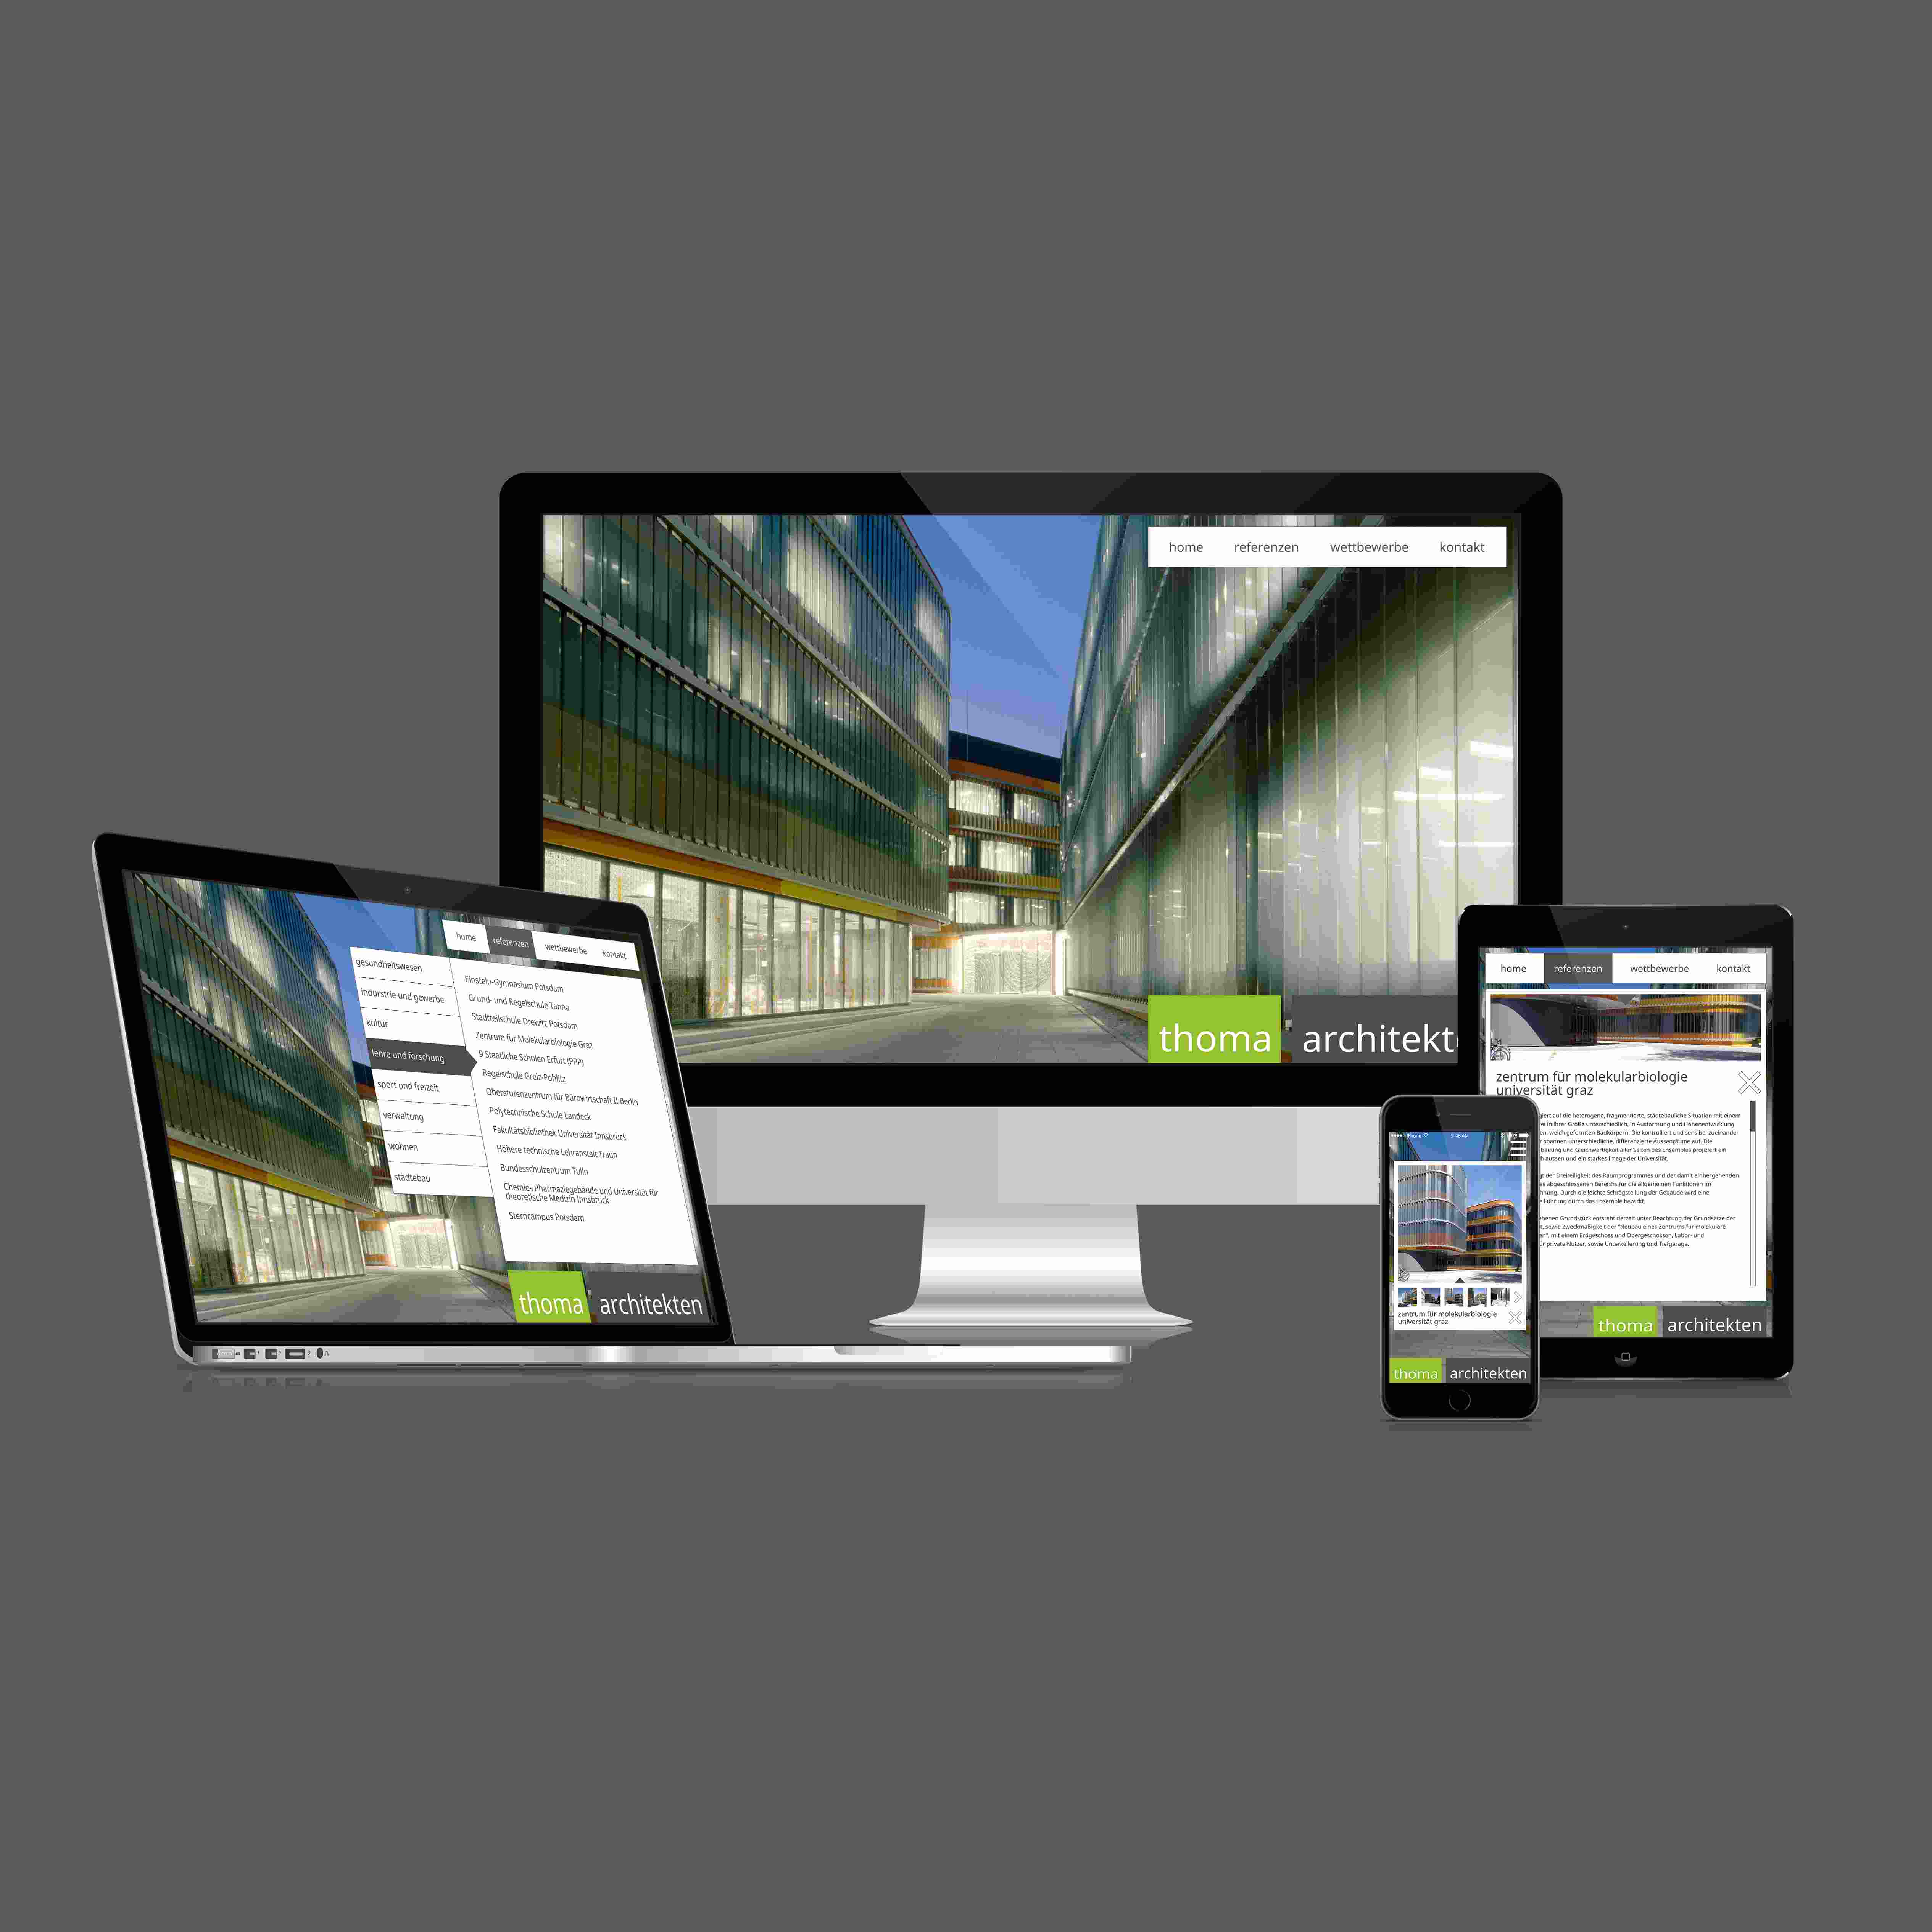 thoma architekten Website Re-Design